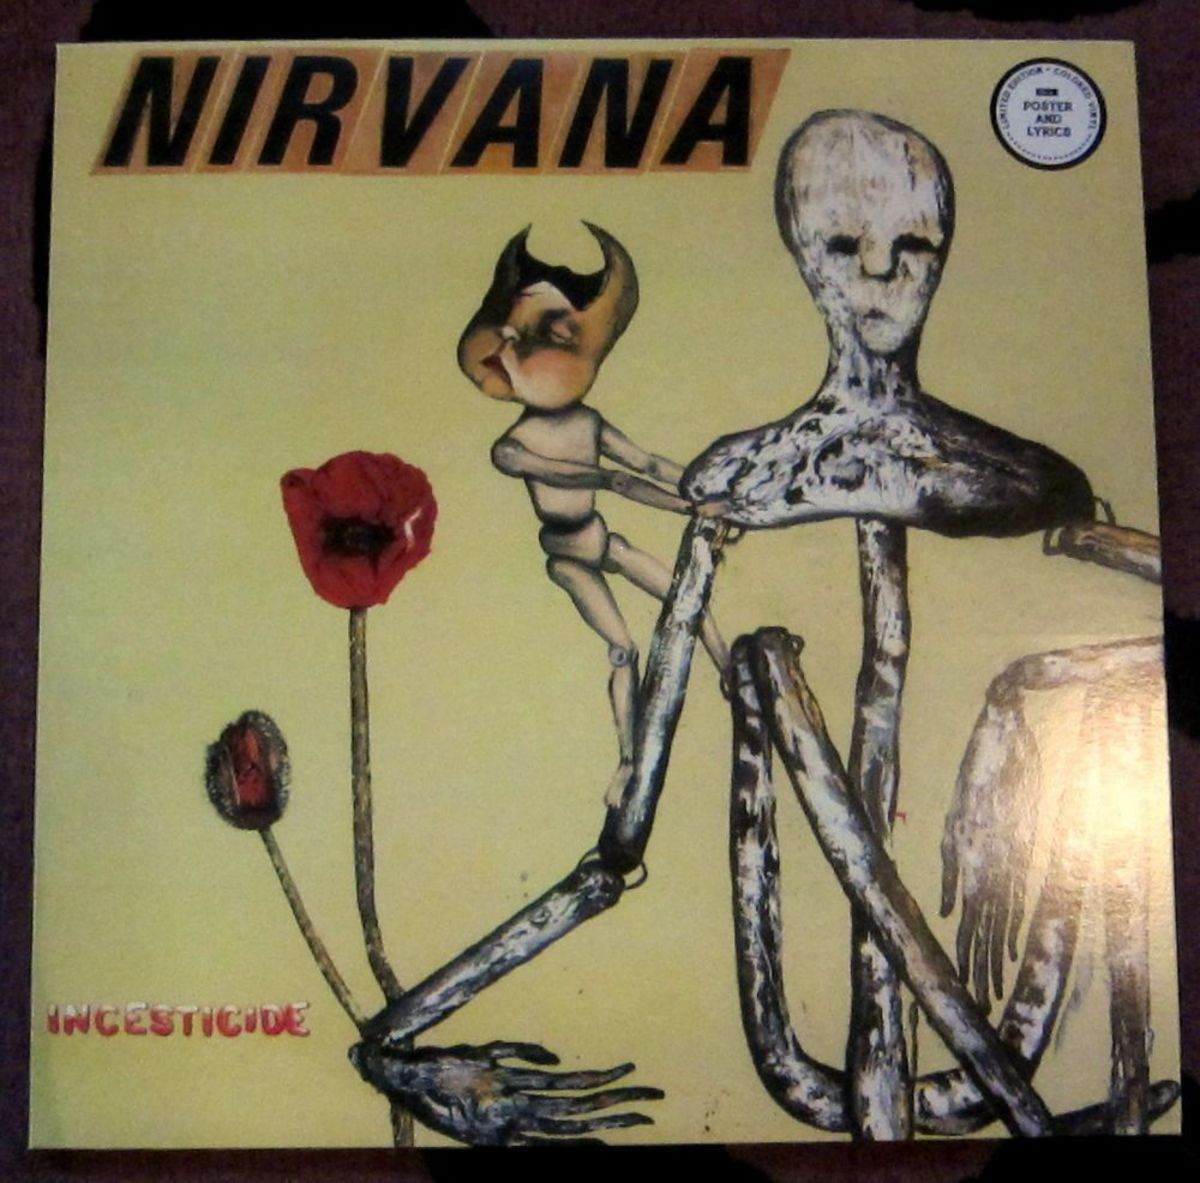 review-of-the-album-incesticide-by-alternative-rock-band-nirvana